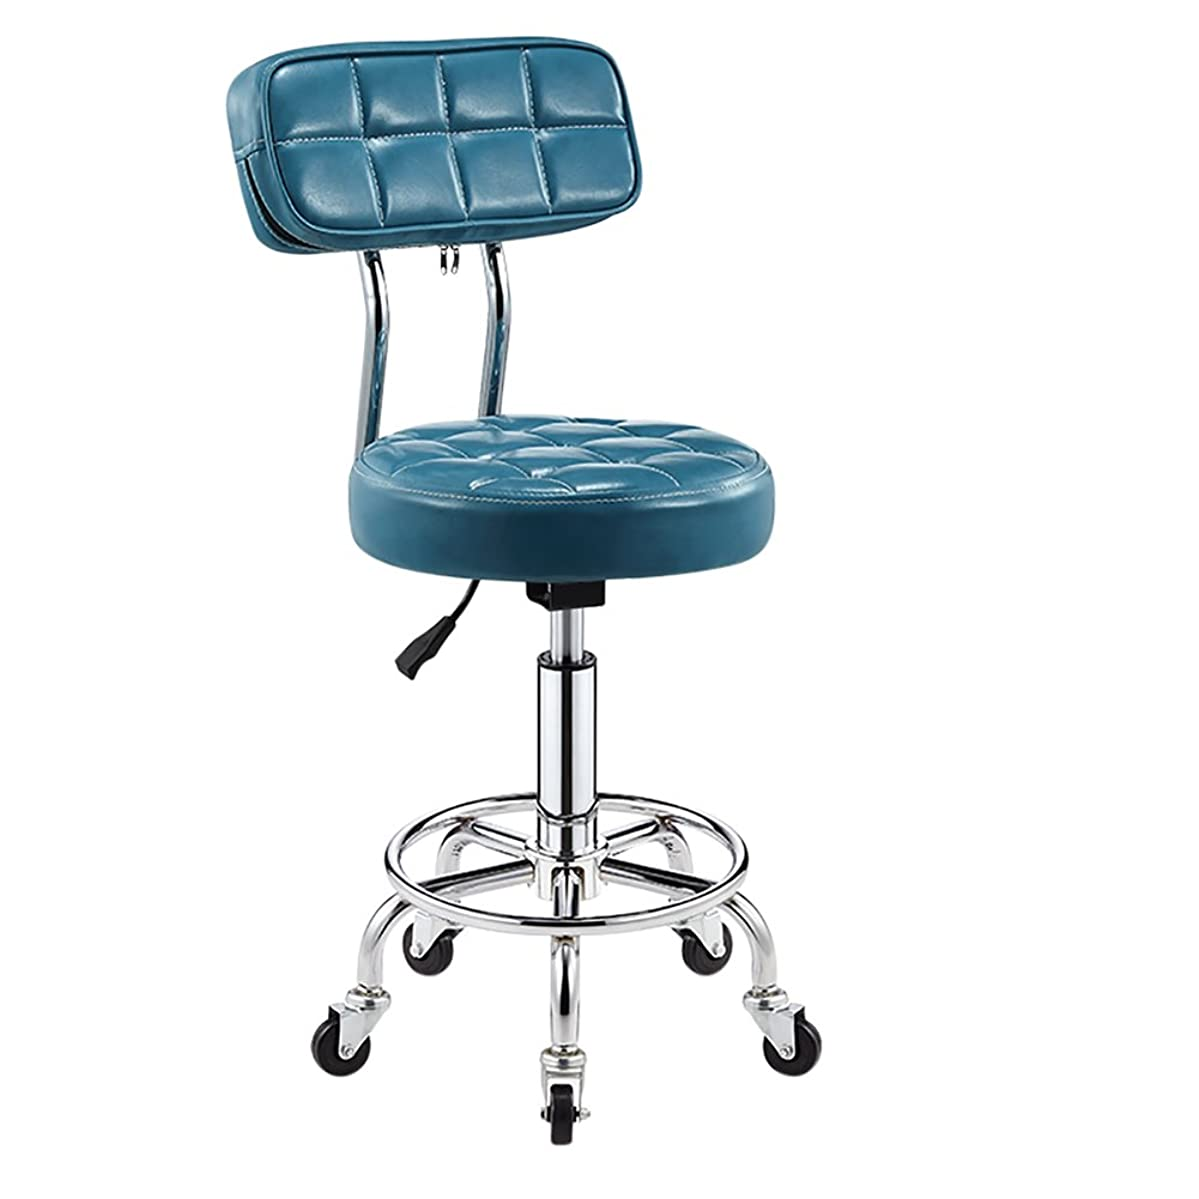 - Faux Leather Kitchen Breakfast Bar Chair with Backrest,Extra Thick 10cm Padding Height Adjustable 5 Castors,Work Stool, Beauty Roller Stools Swivel Chair (Color : Sky Blue, Size : 44-56cm)